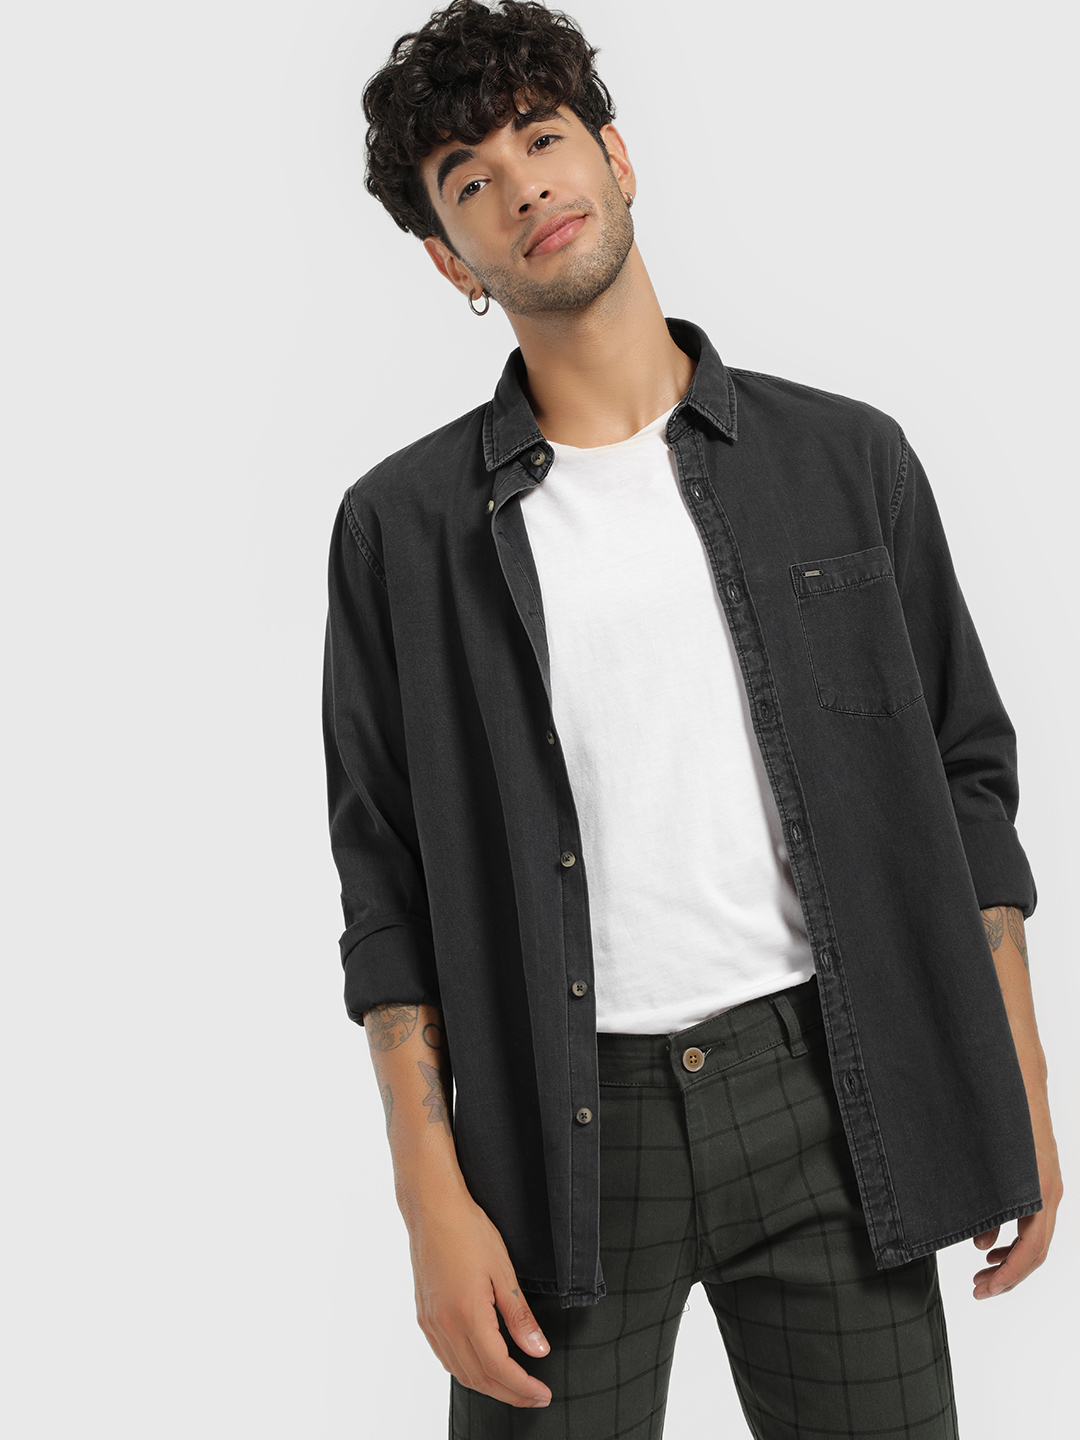 Lee Cooper Black Long Sleeve Denim Shirt 1